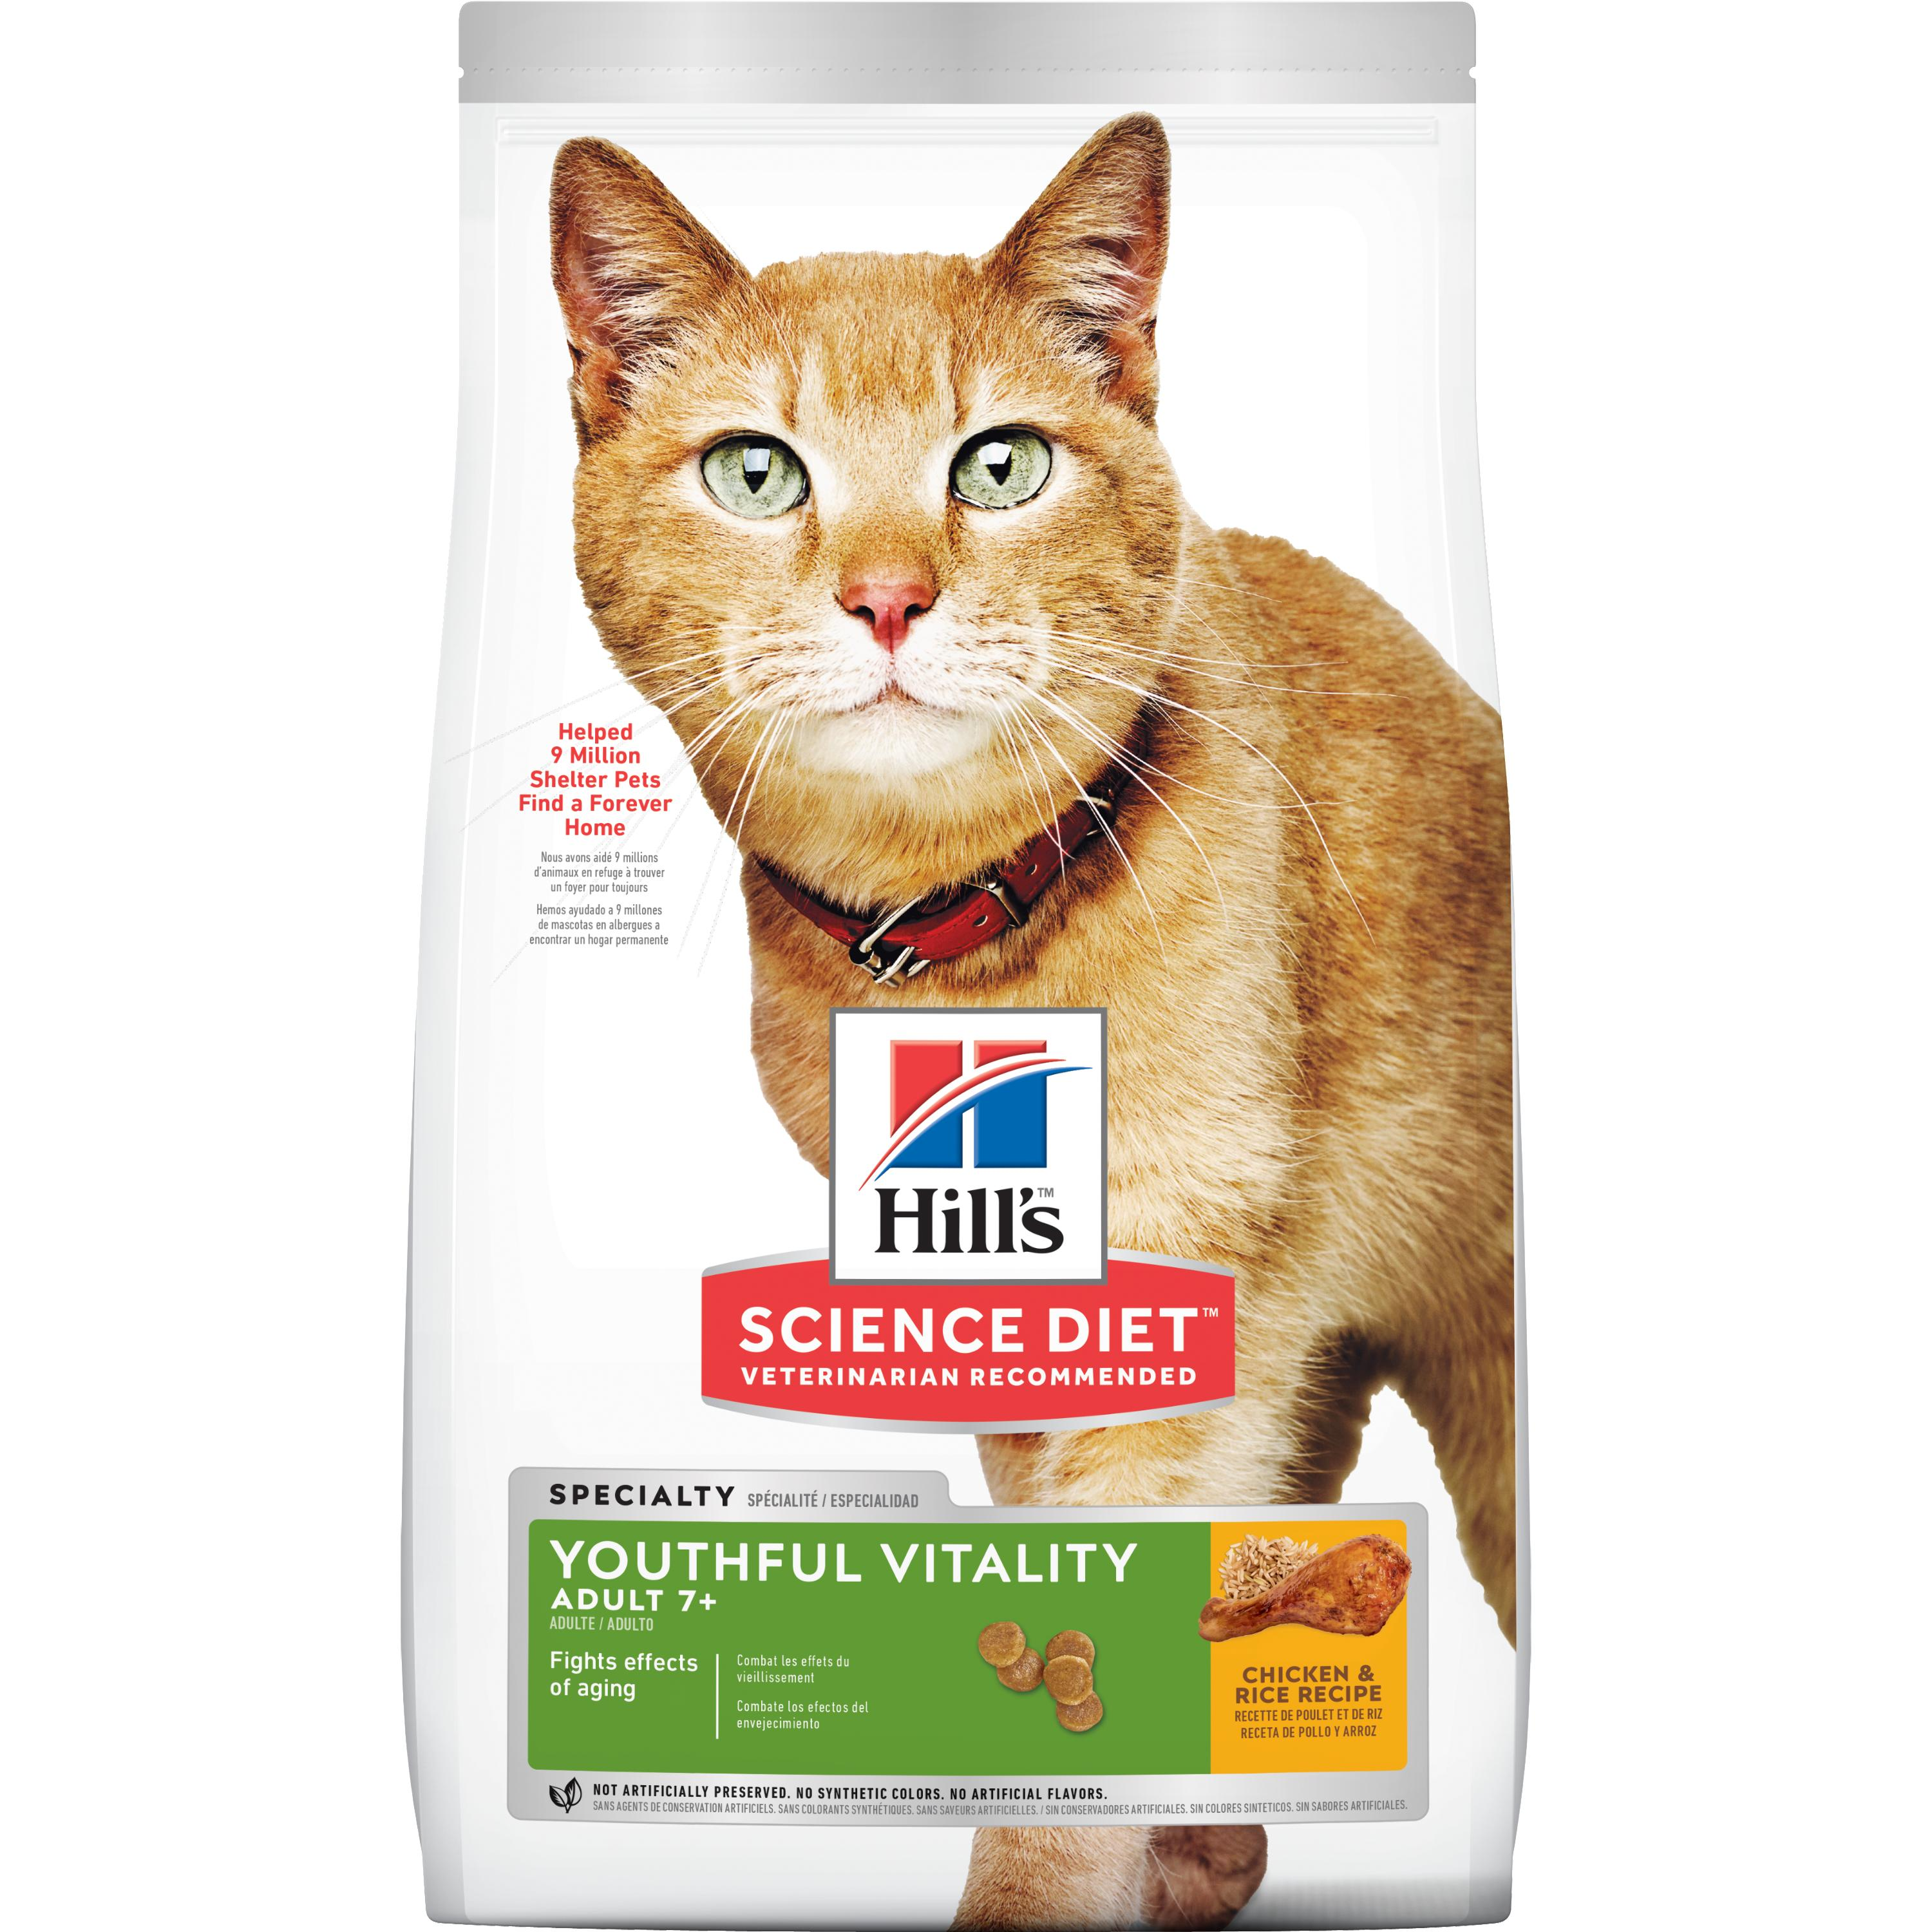 Hill's Science Diet (Spend $20,Get $5) Adult 7+ Youthful Vitality Chicken & Rice Recipe Dry Cat Food